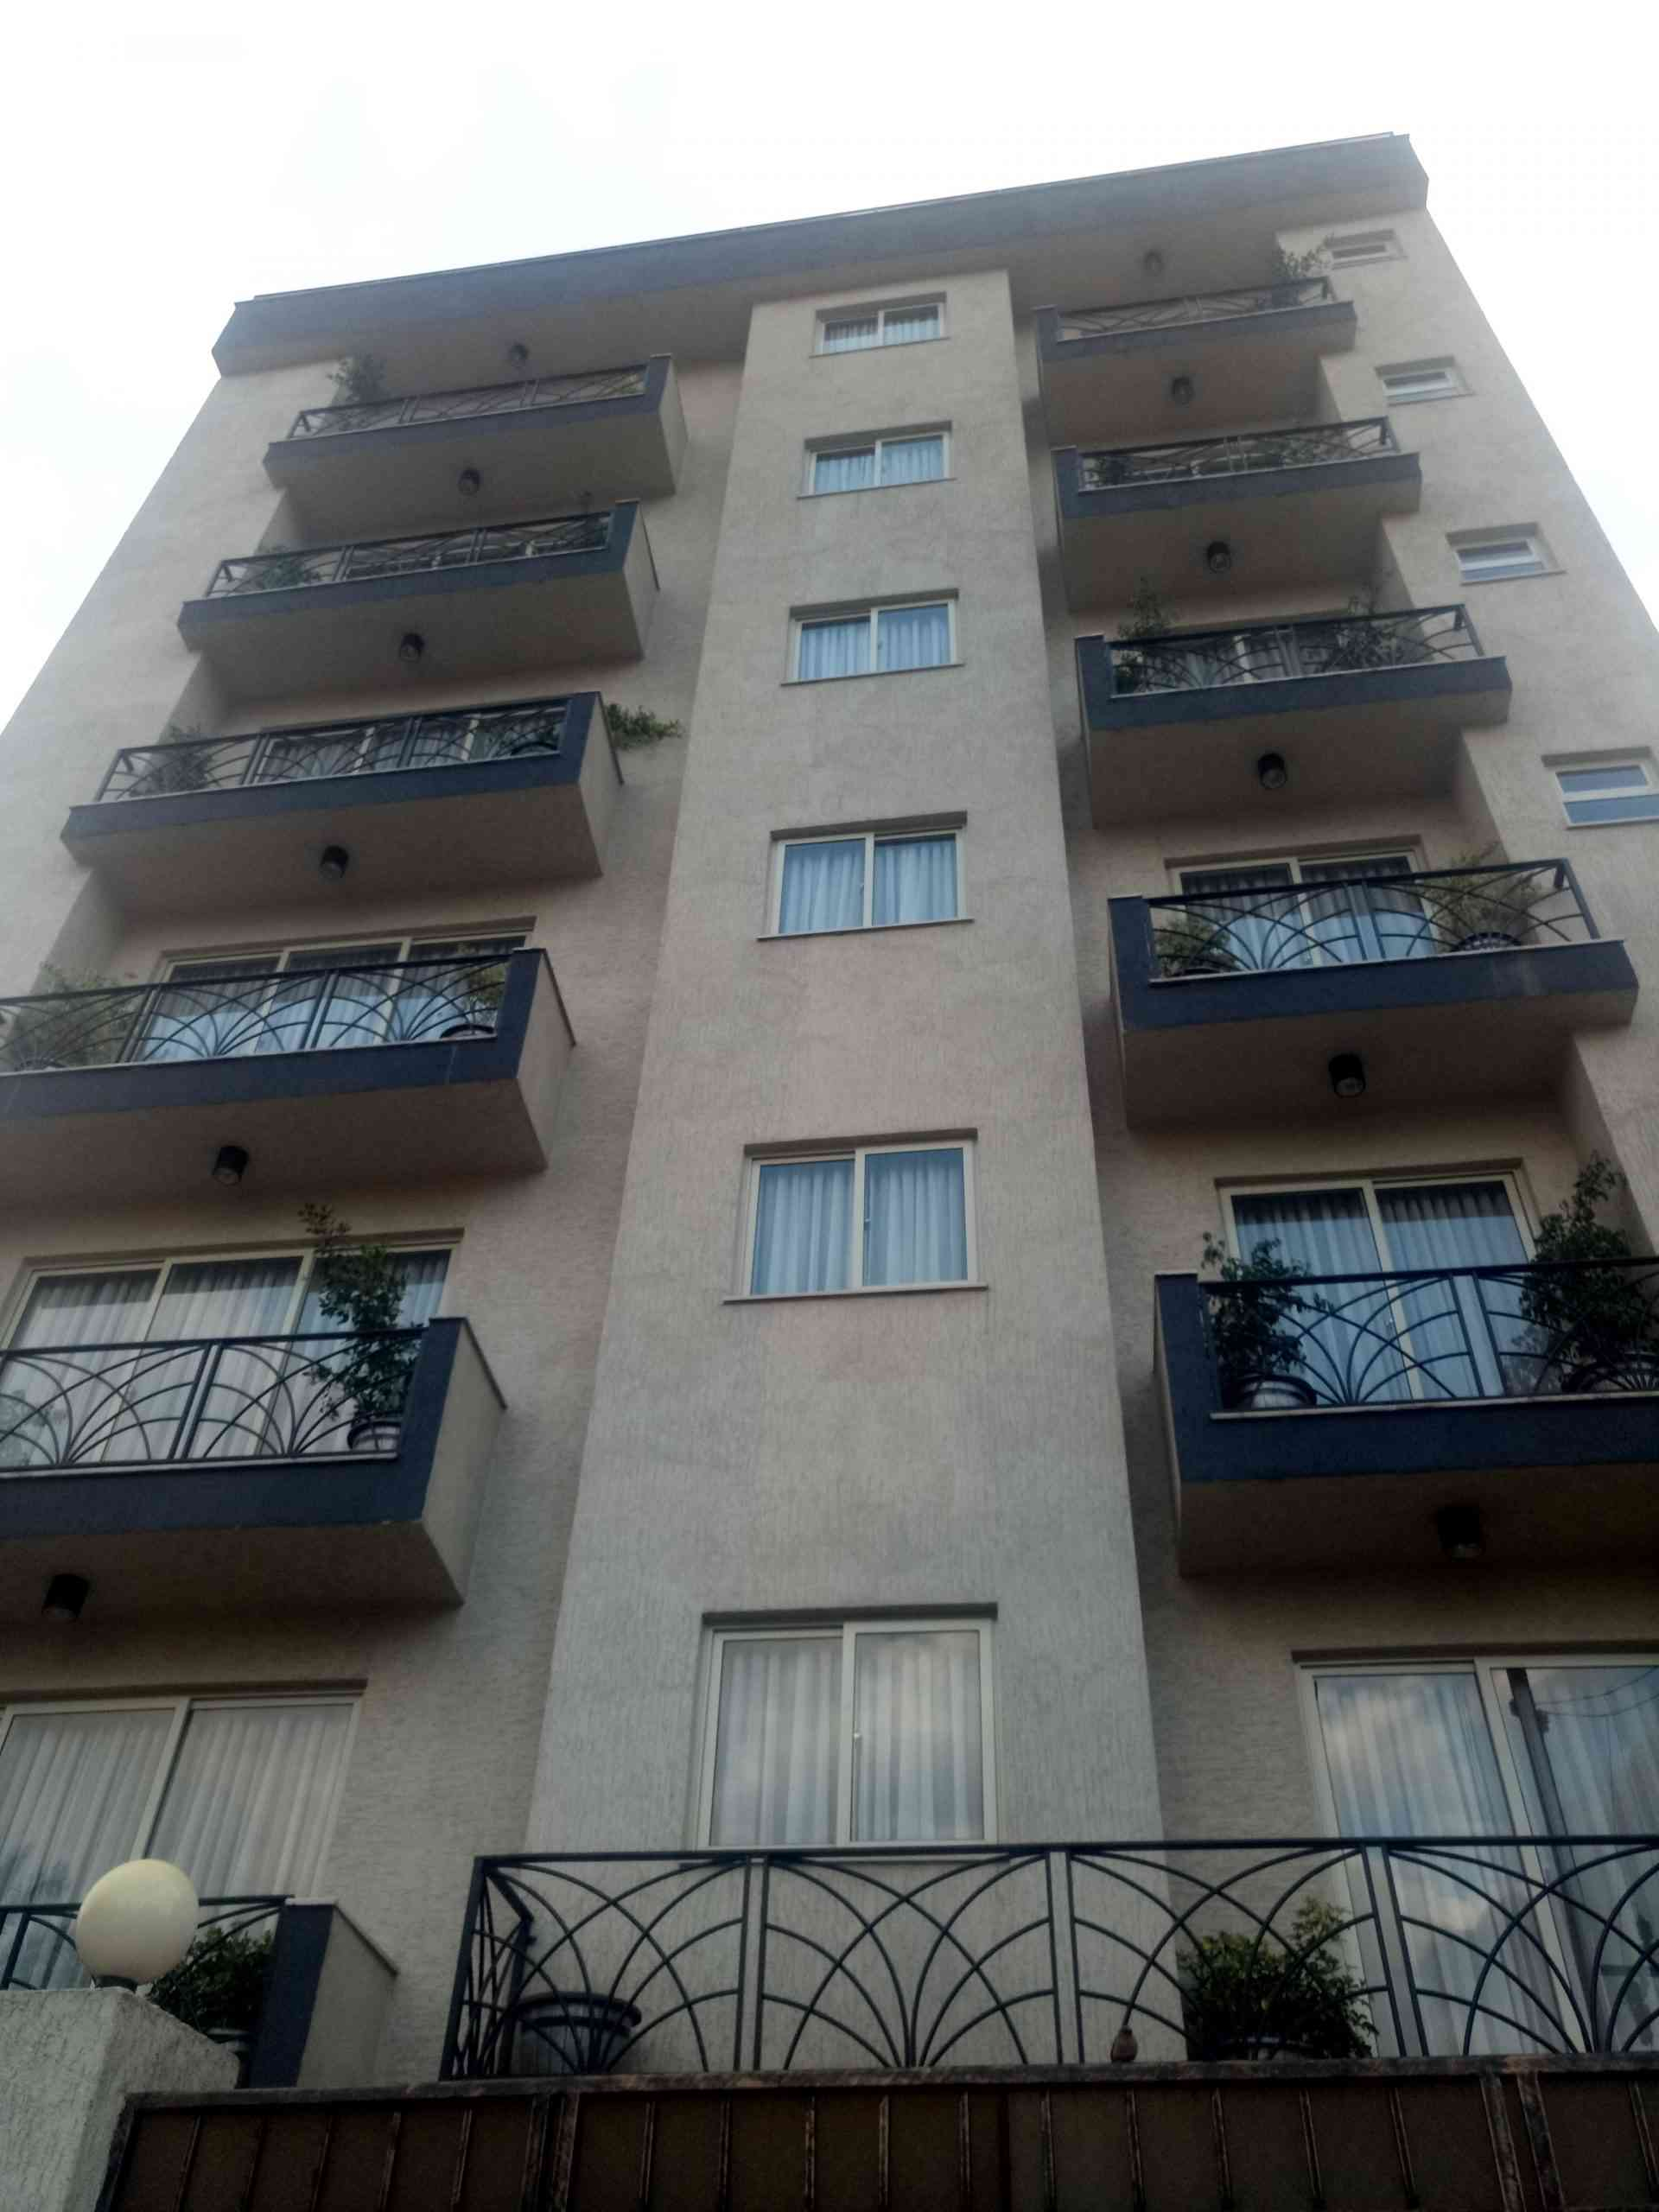 28 Bedrooms Fully Furnished Apartment Building For Rent In Addis Ababa